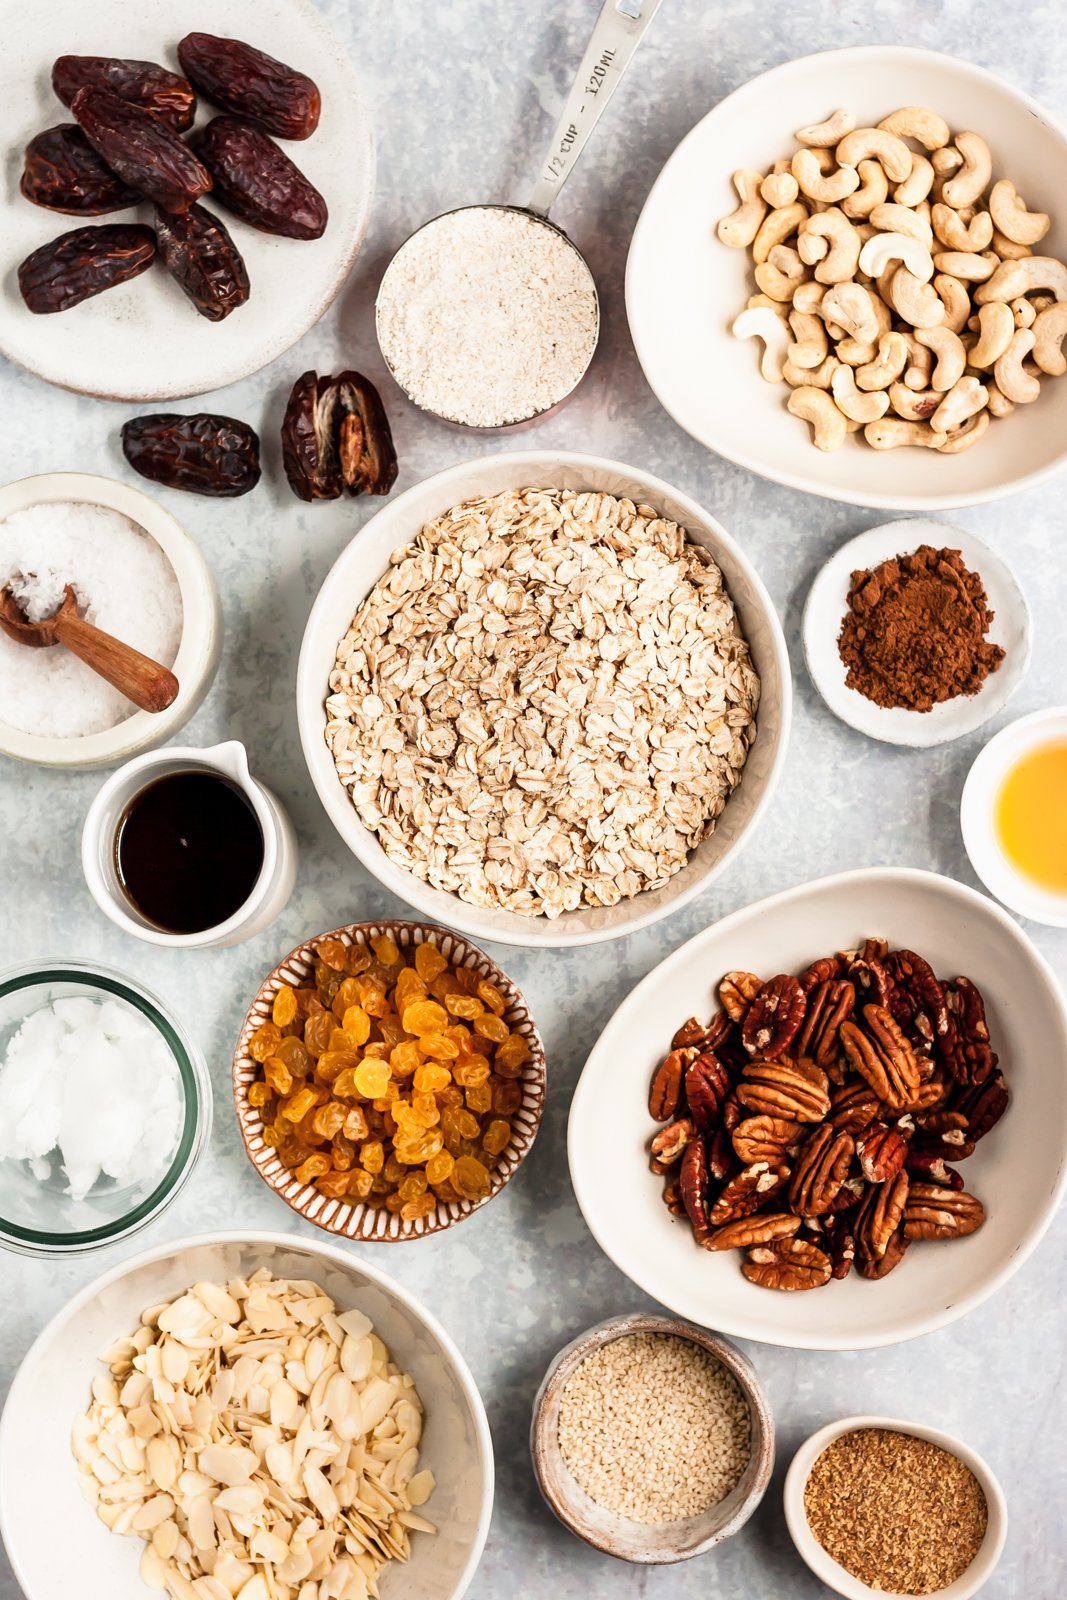 healthy granola recipe ingredients on a gray surface